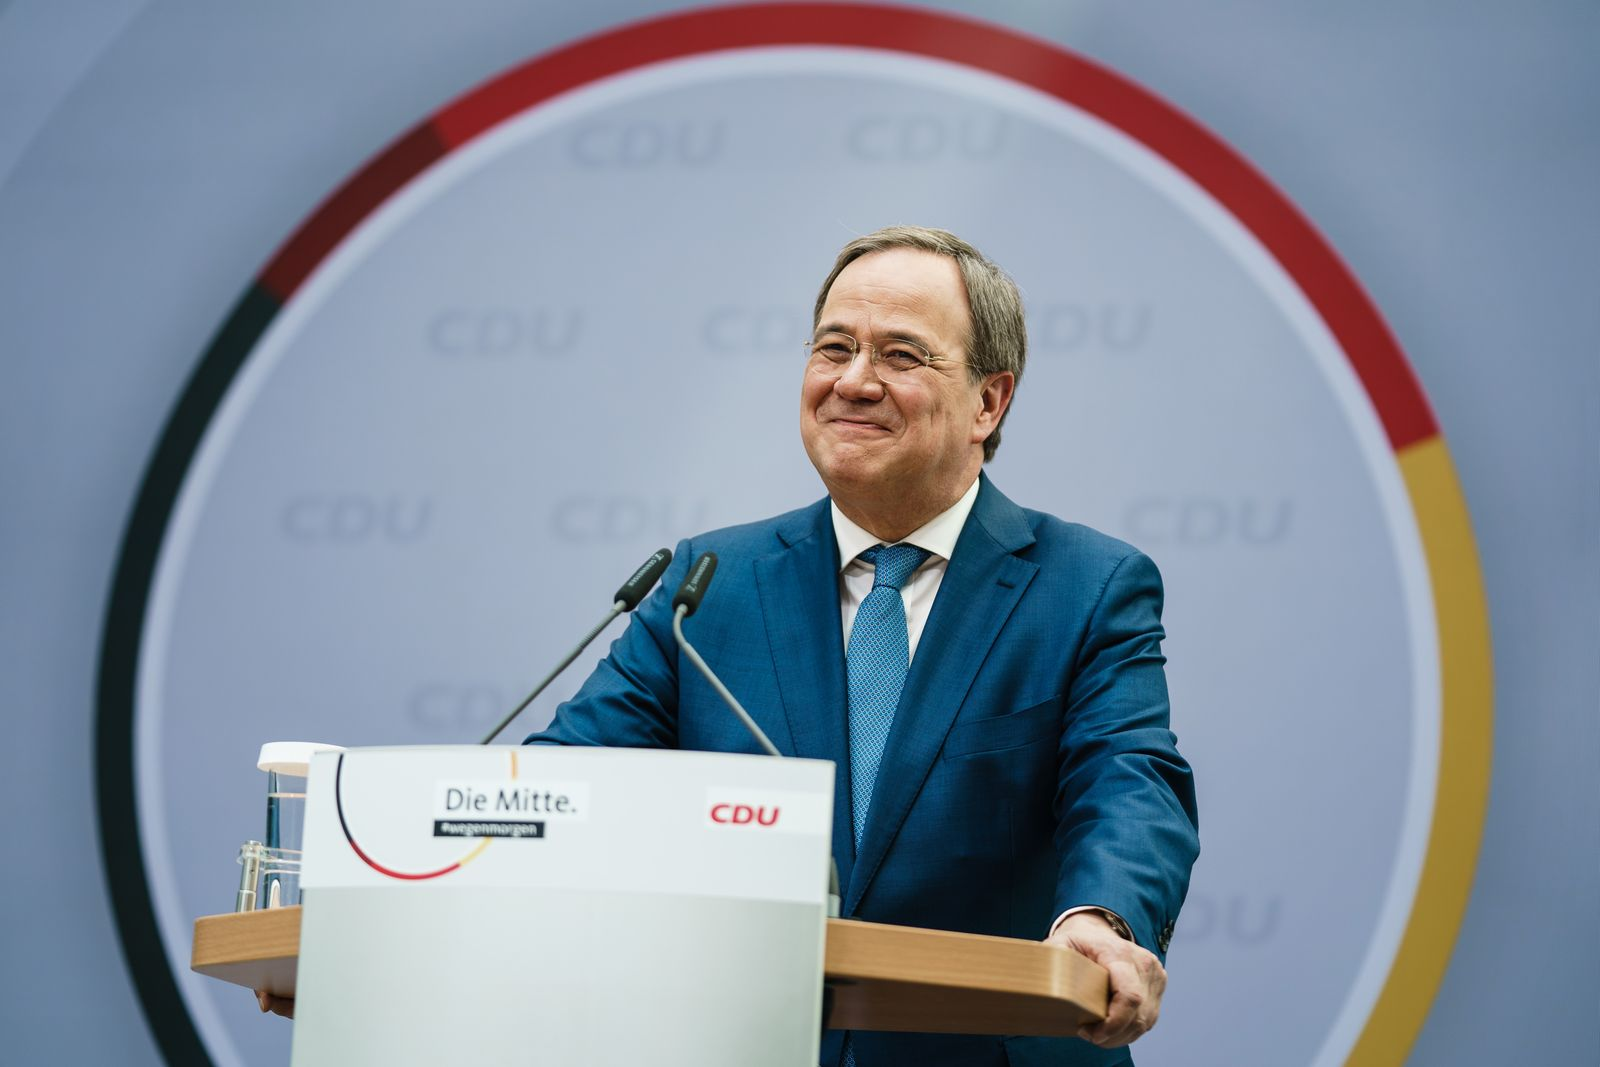 CDU press conference after board meetings following regional state elections in Saxony-Anhalt